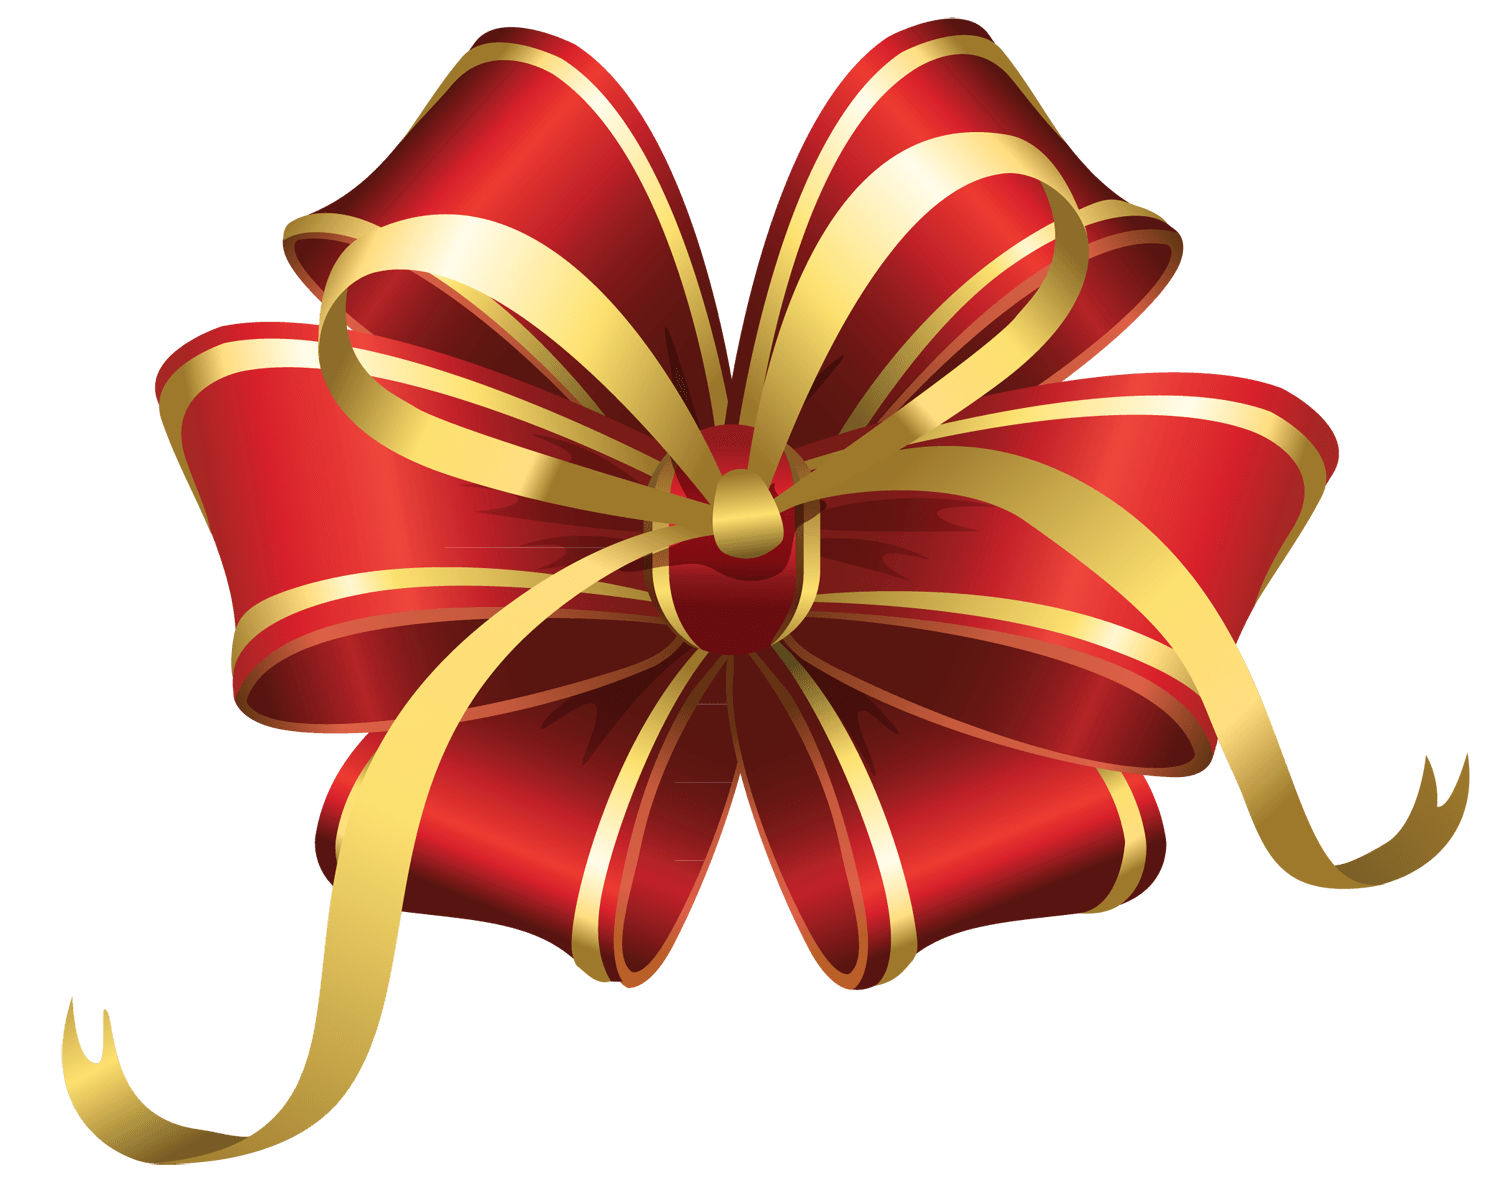 Star ribbon clipart picture transparent library Christmas Star Ribbon transparent PNG - StickPNG picture transparent library